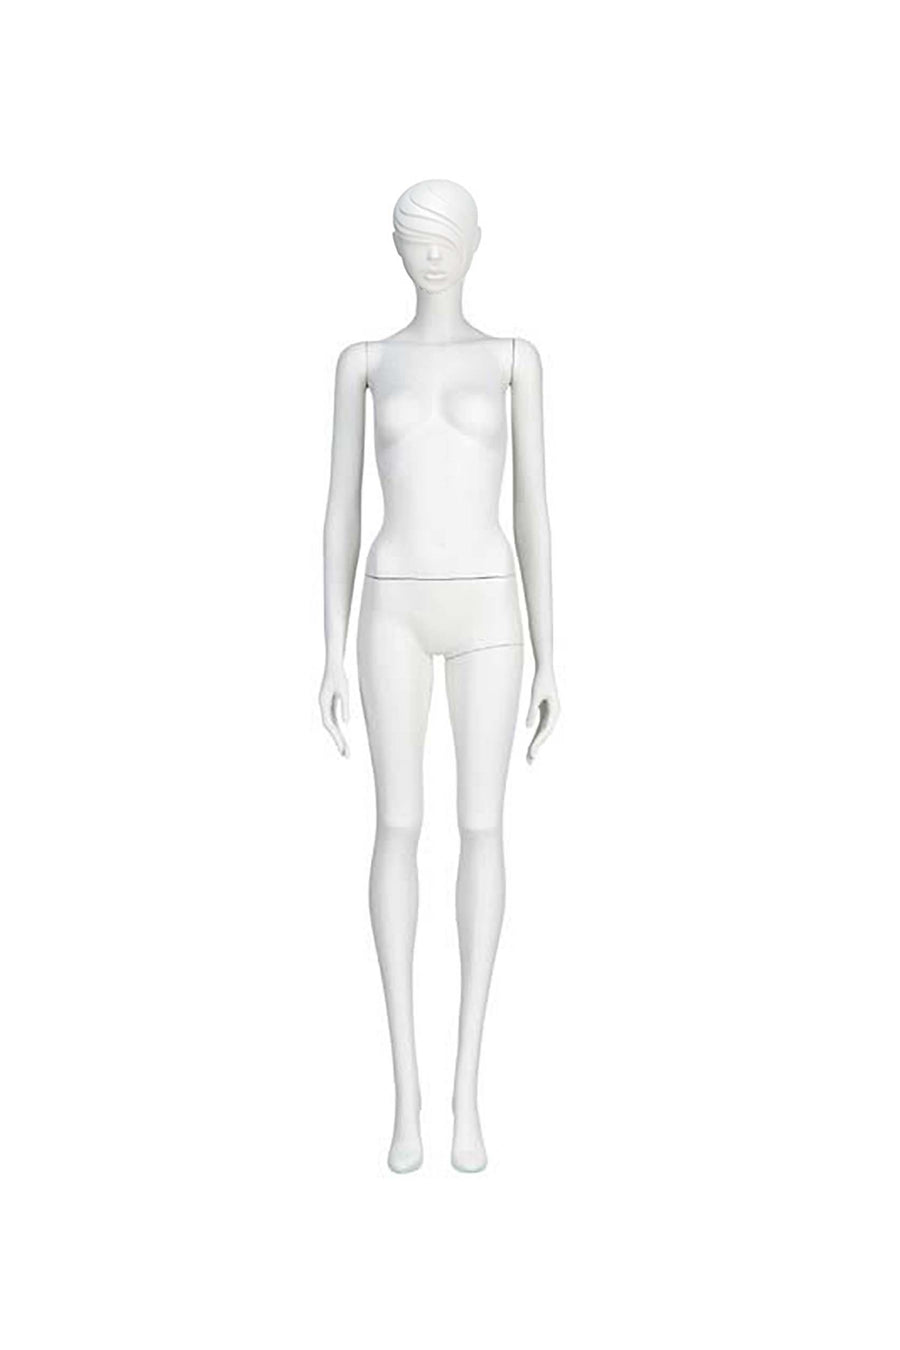 blue chrome female mannequin with arms at sides and legs together